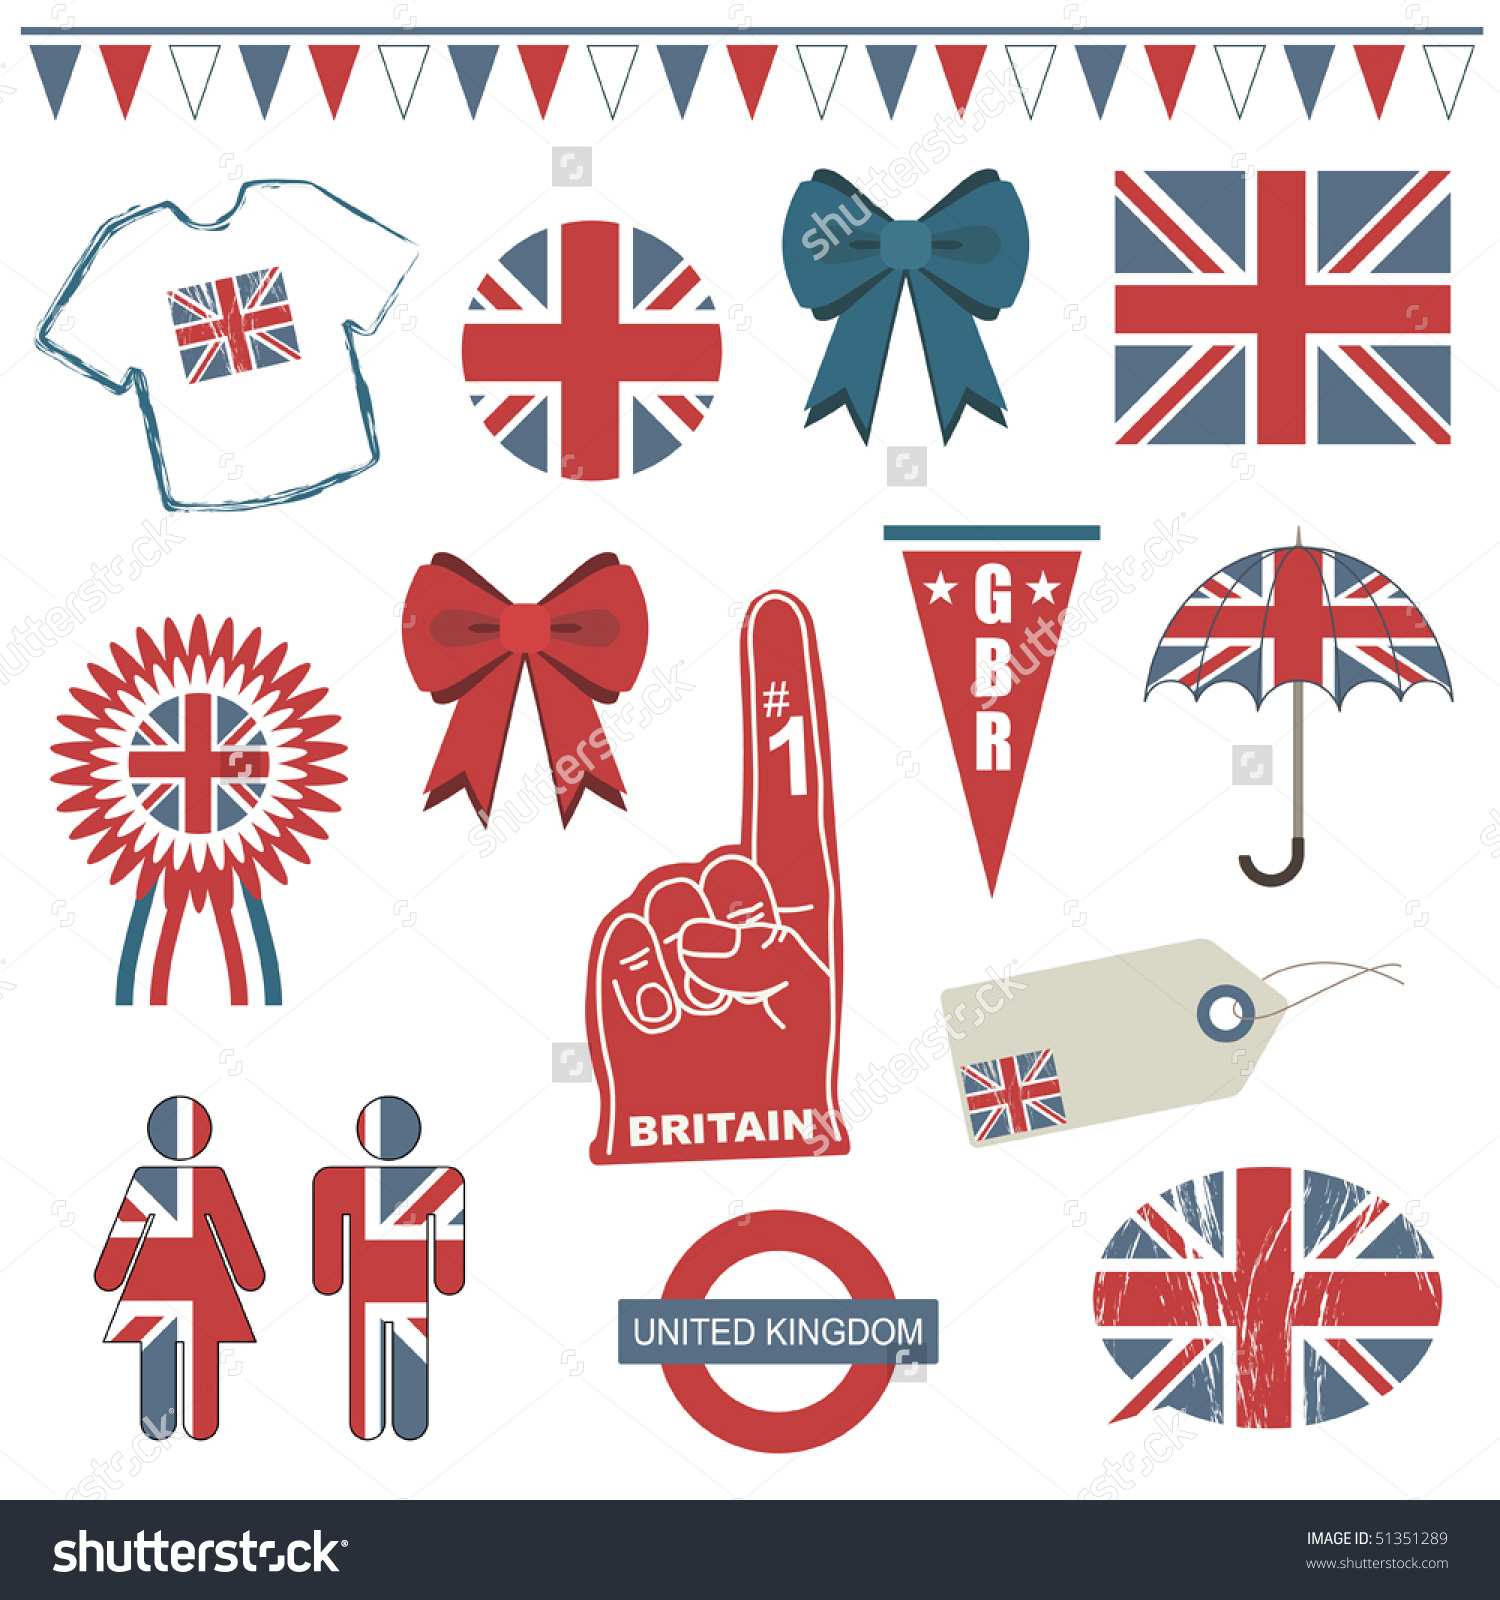 Collection Great Britain Supporter Clip Art Stock Vector 51351289.